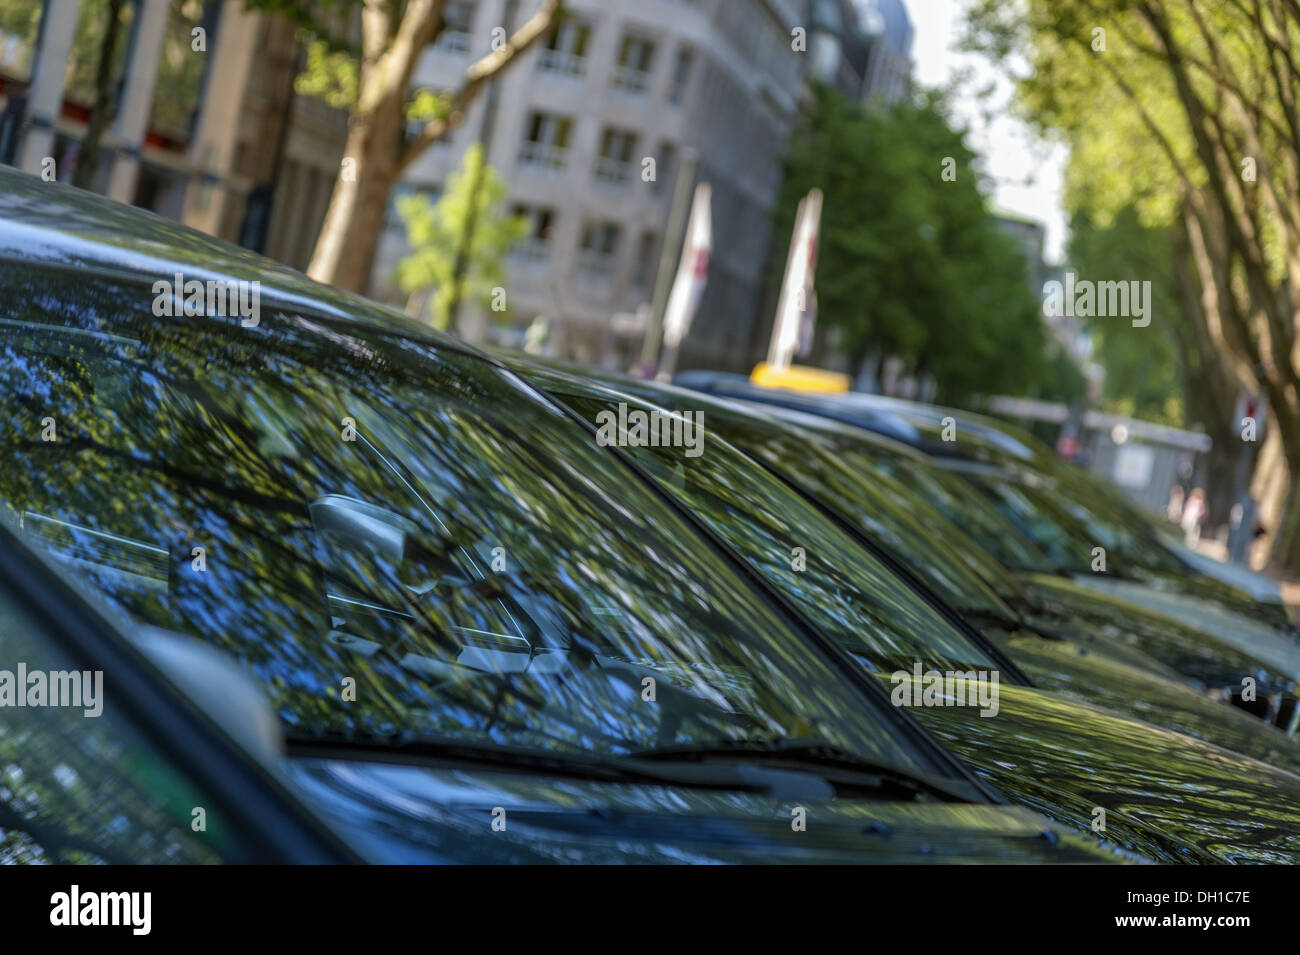 parked vehicles in series - Stock Image